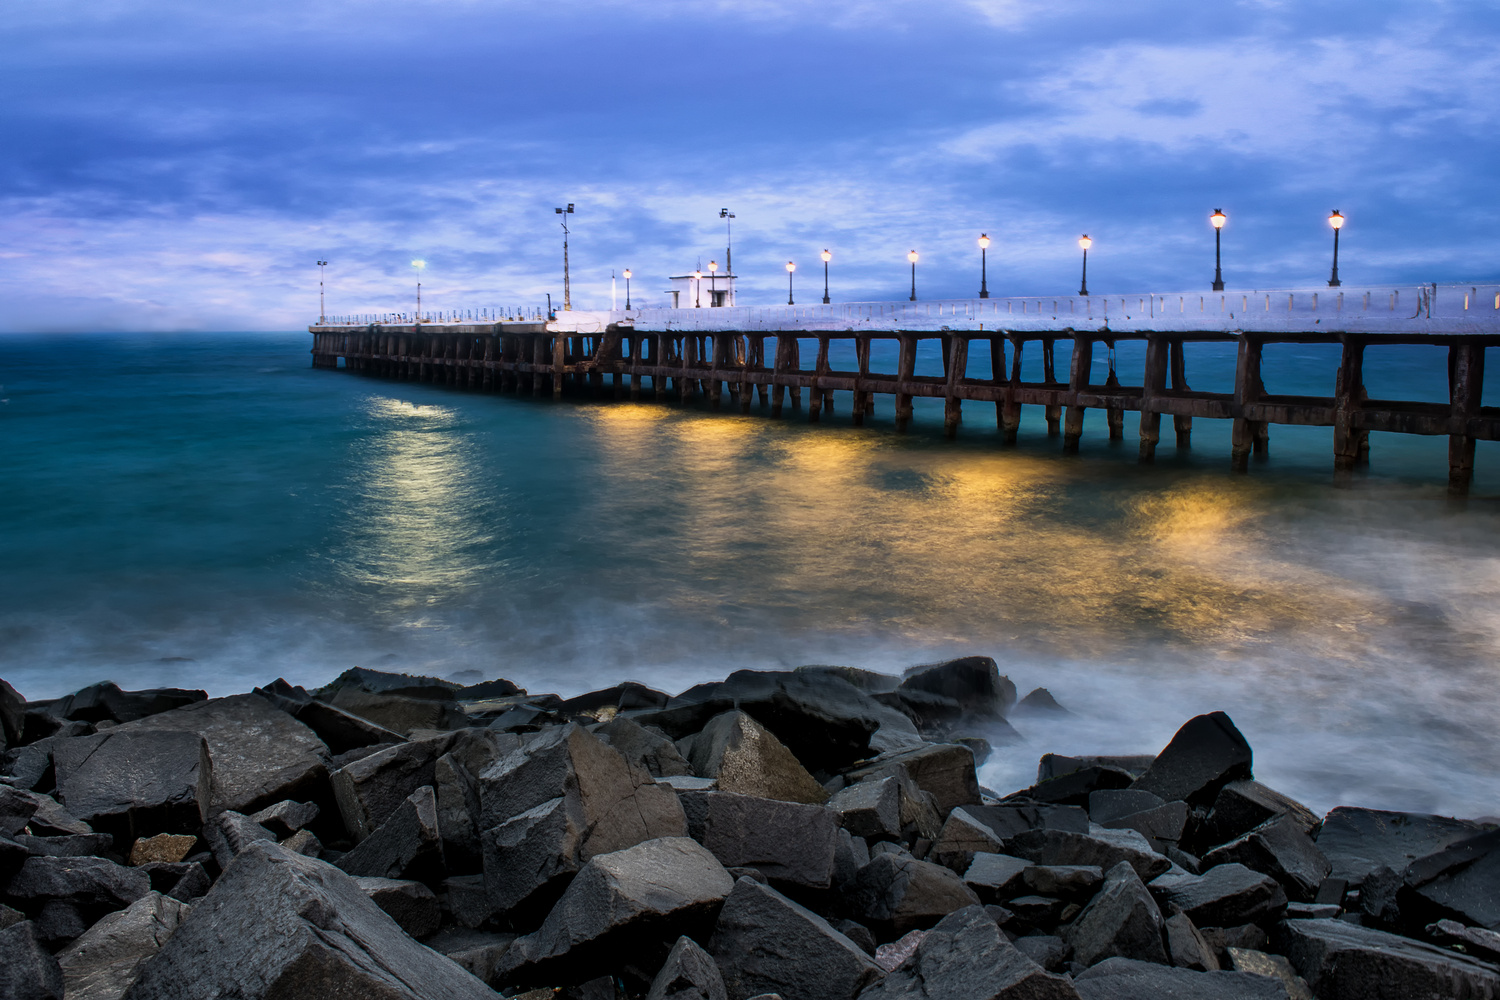 The Harbour bridge - Pondy by Anirudh Raghav